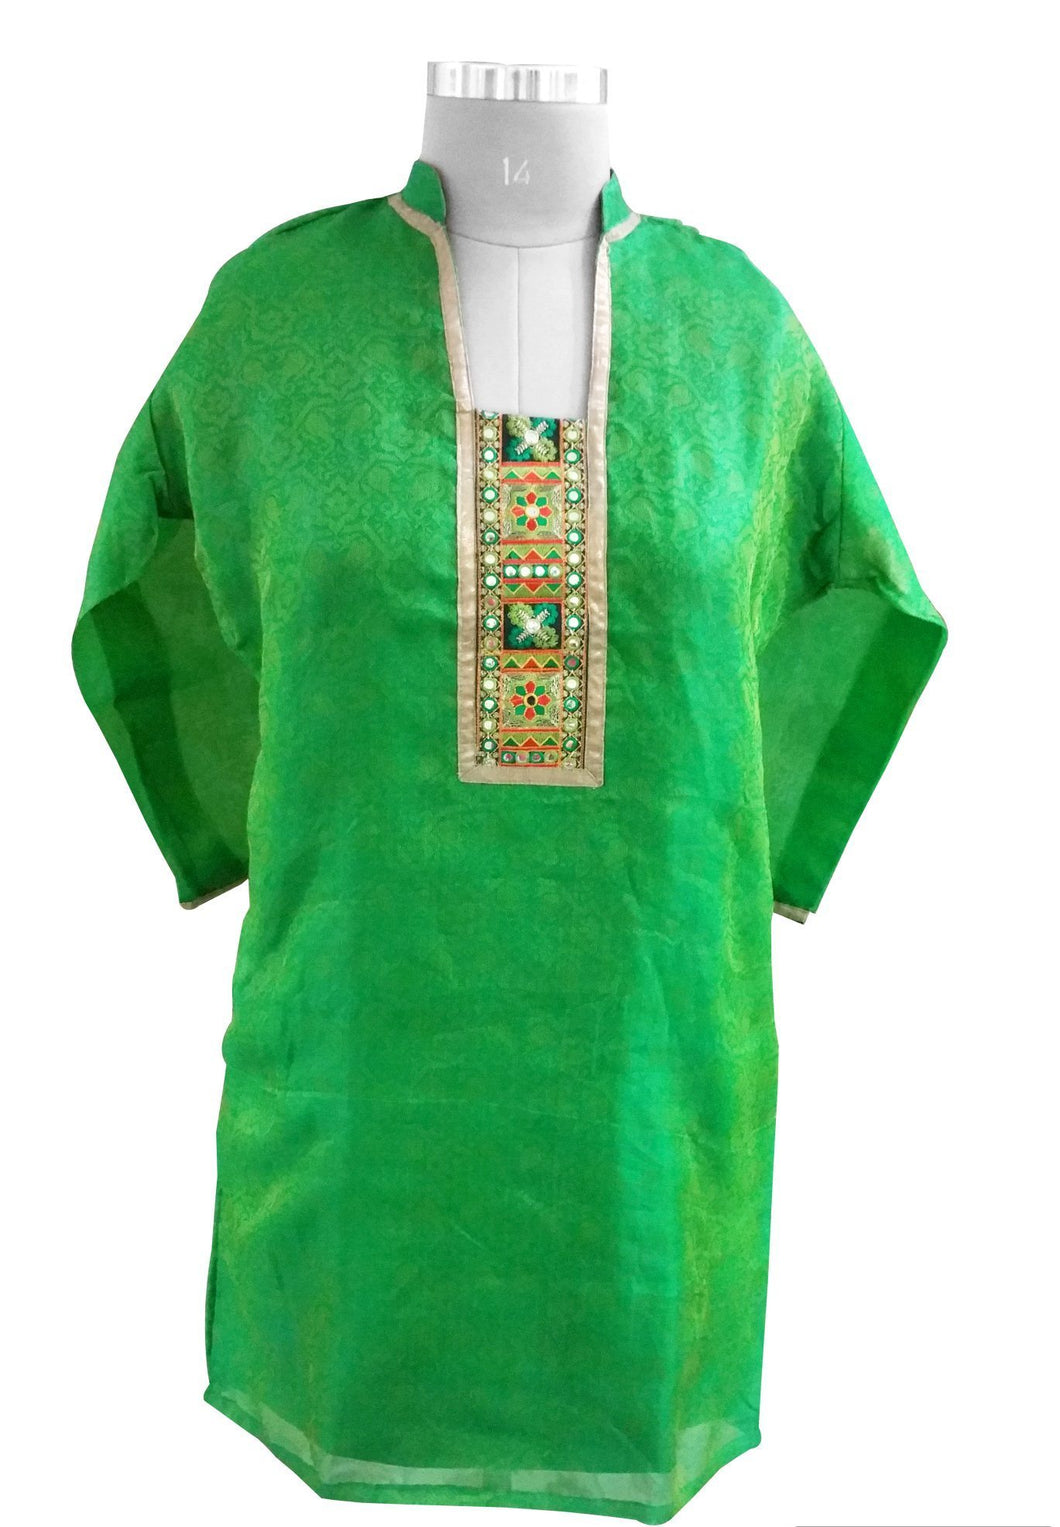 Green Chanderi with lining Stitched Kurta Dress Size 46 SC612 - Ethnic's By Anvi Creations